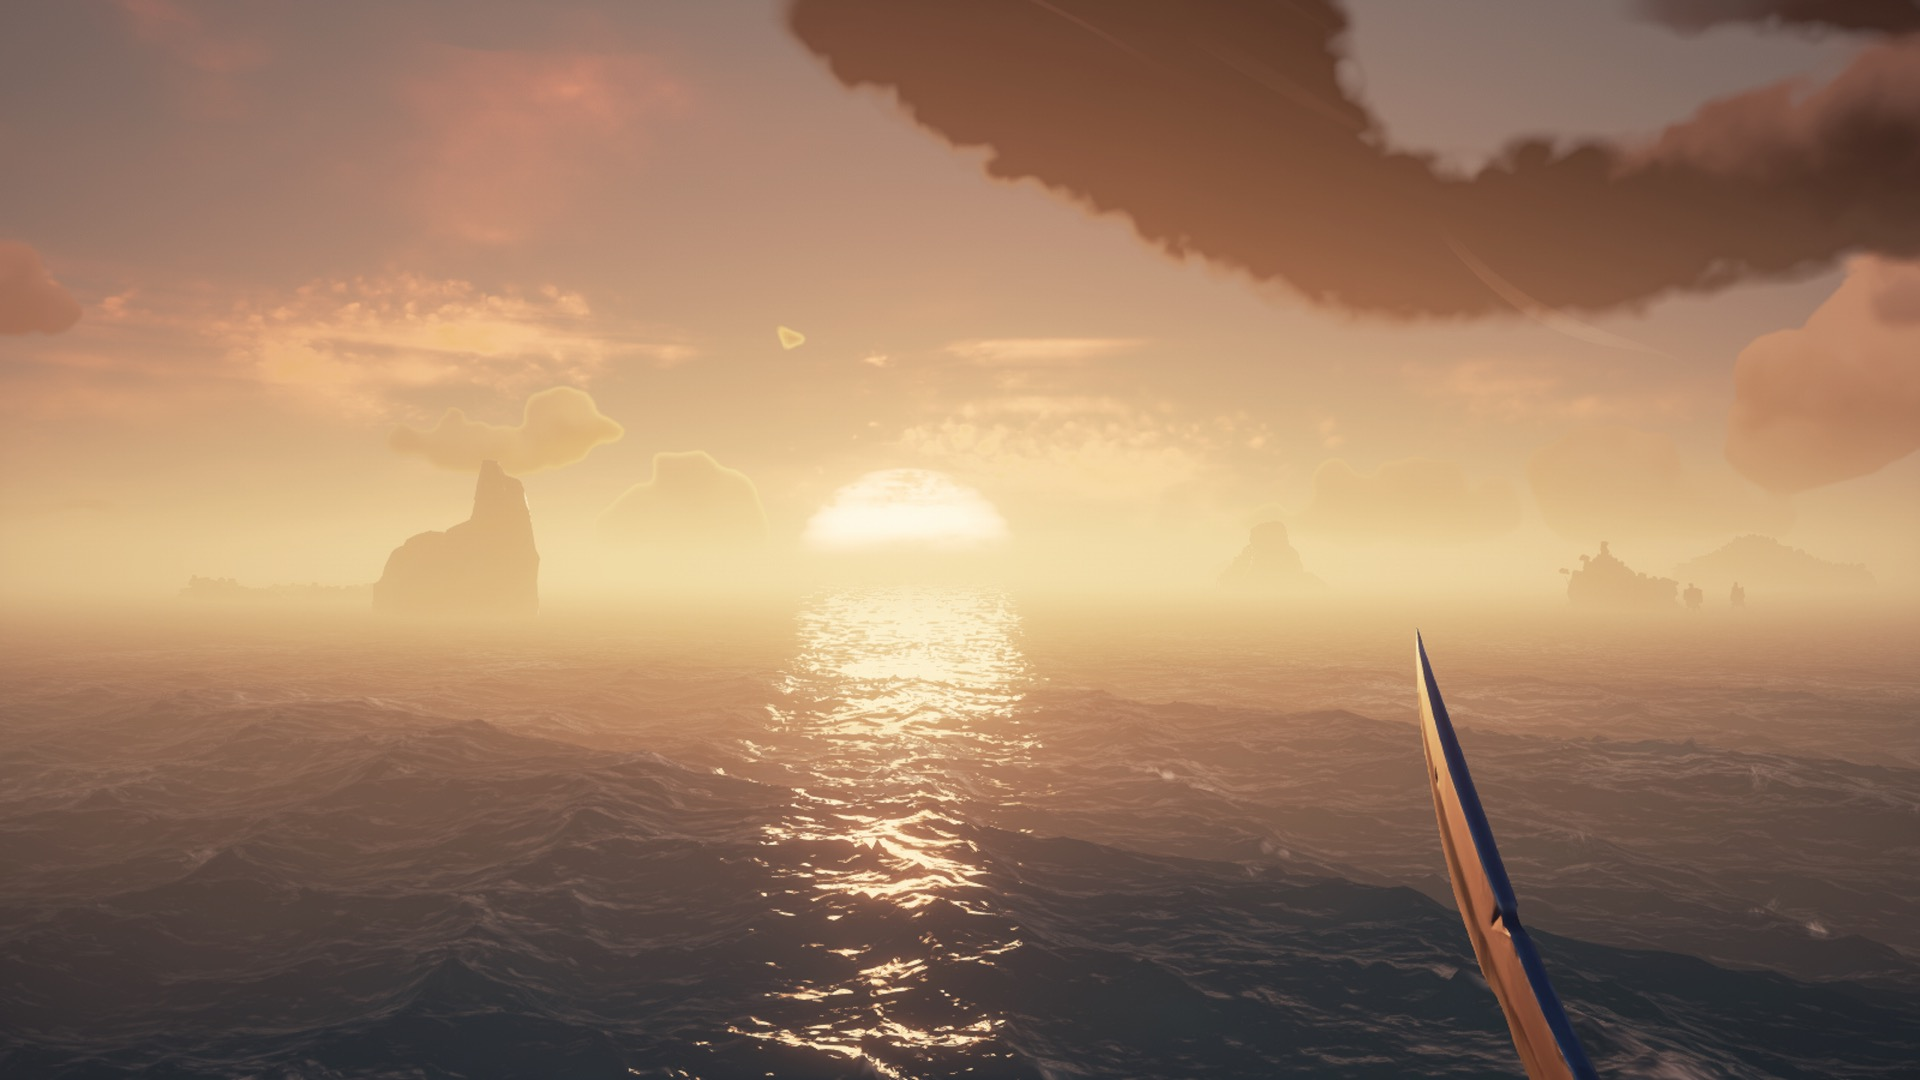 Editorial: Sea of Salt, or is Sea of Thieves a Game Changer?